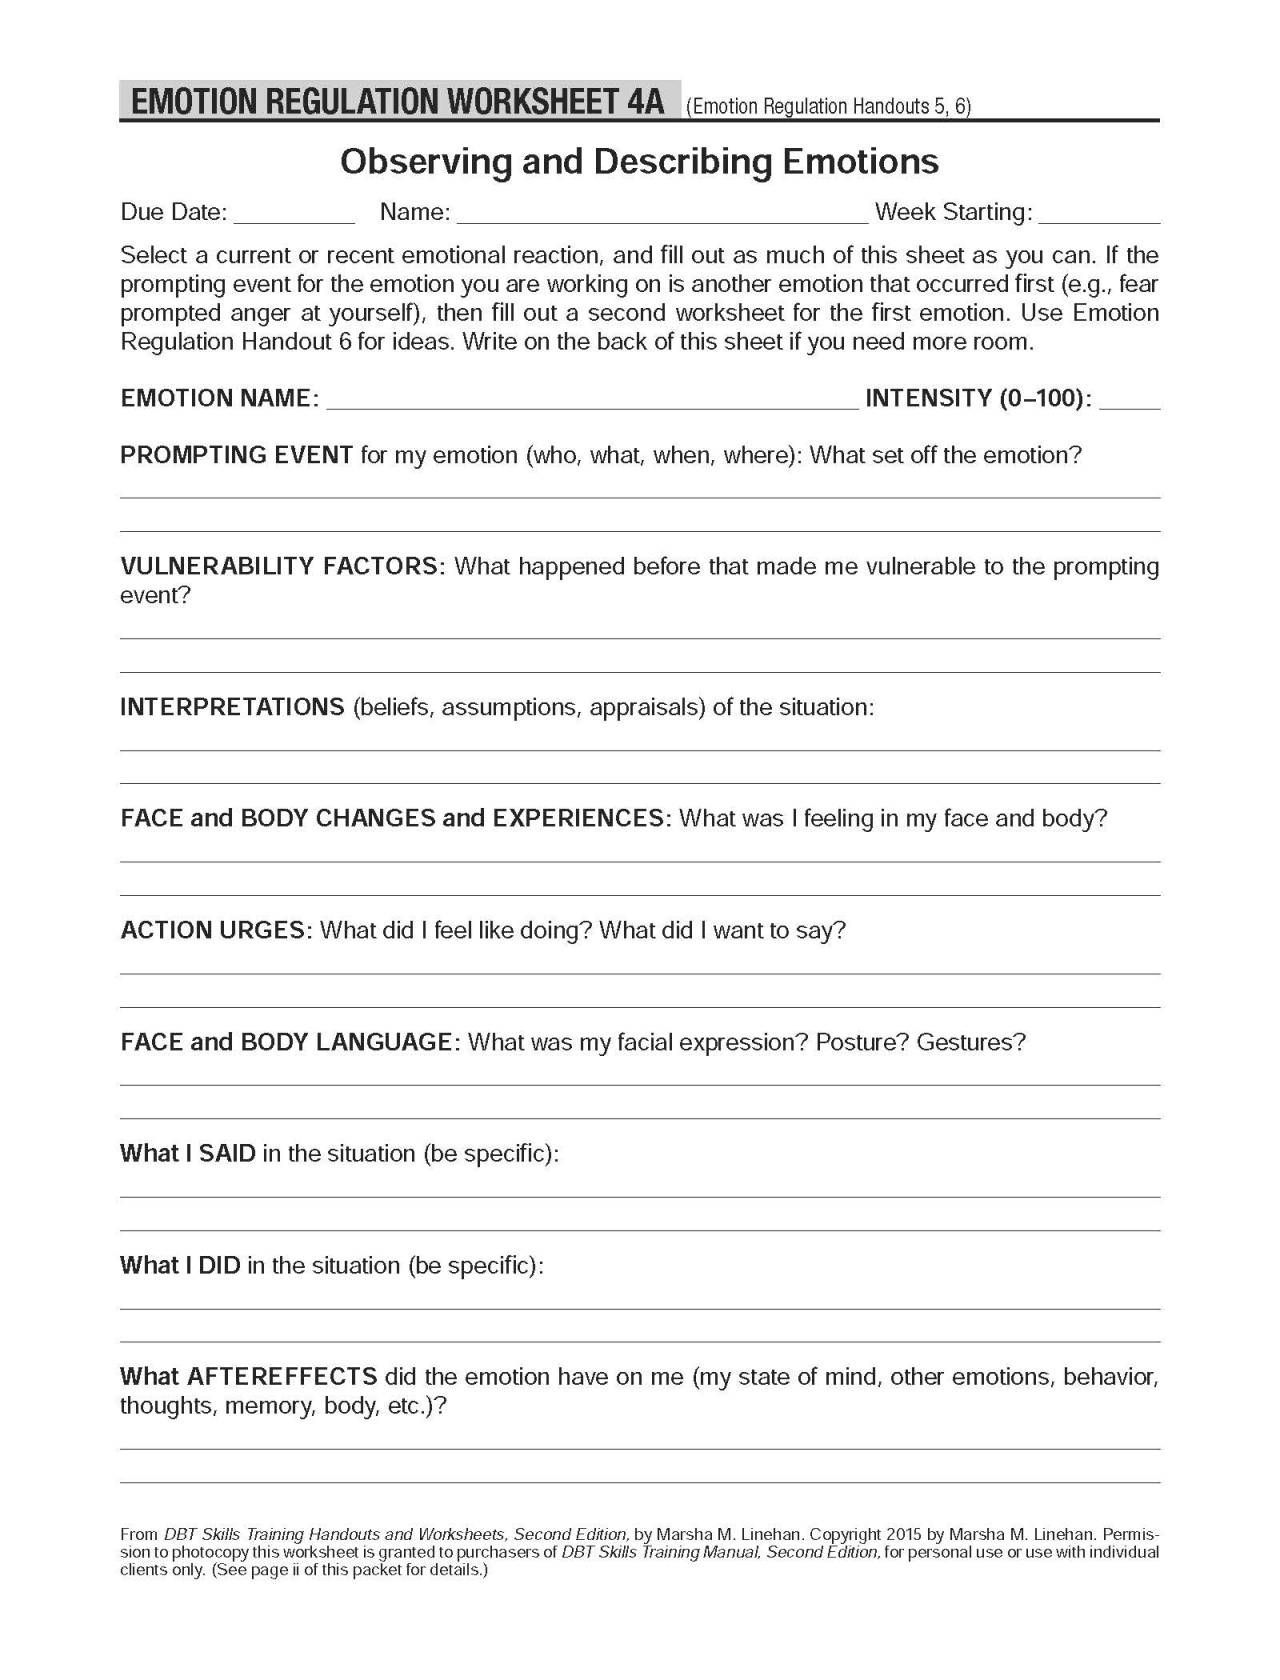 Dbt Self Help Resources Observing And Describing Emotions These Worksheets Accompany The Emotion R Dbt Therapy Therapy Worksheets Dialectical Behavior Therapy